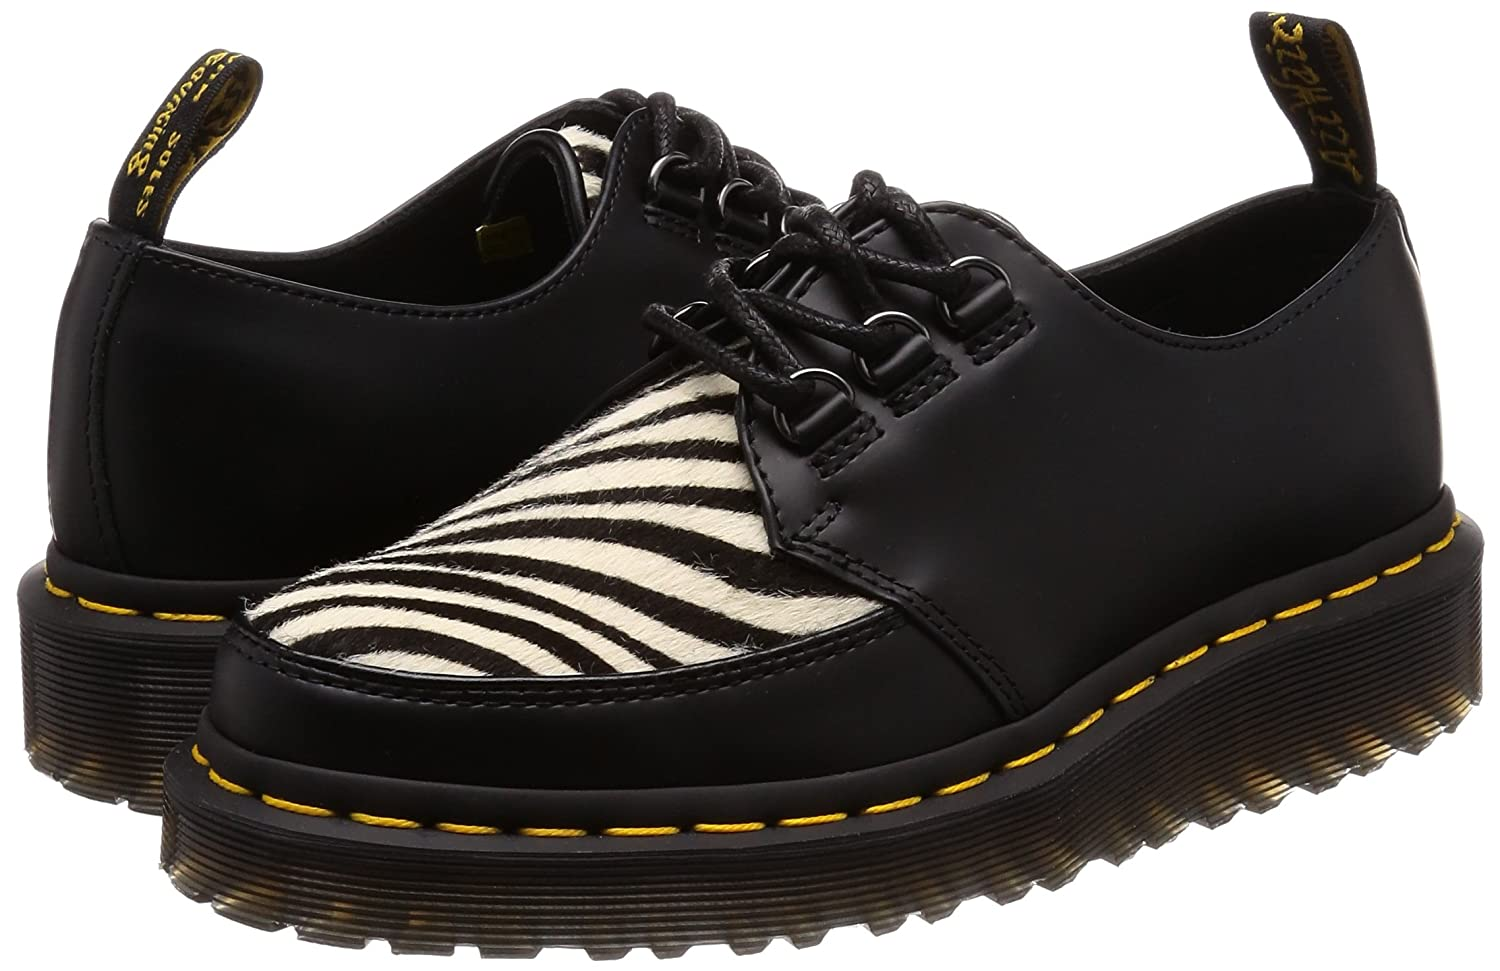 Dr. Martens Unisex Ramsey Zebra B079MP21V7 7 M US Women / 6 M US Men|Black